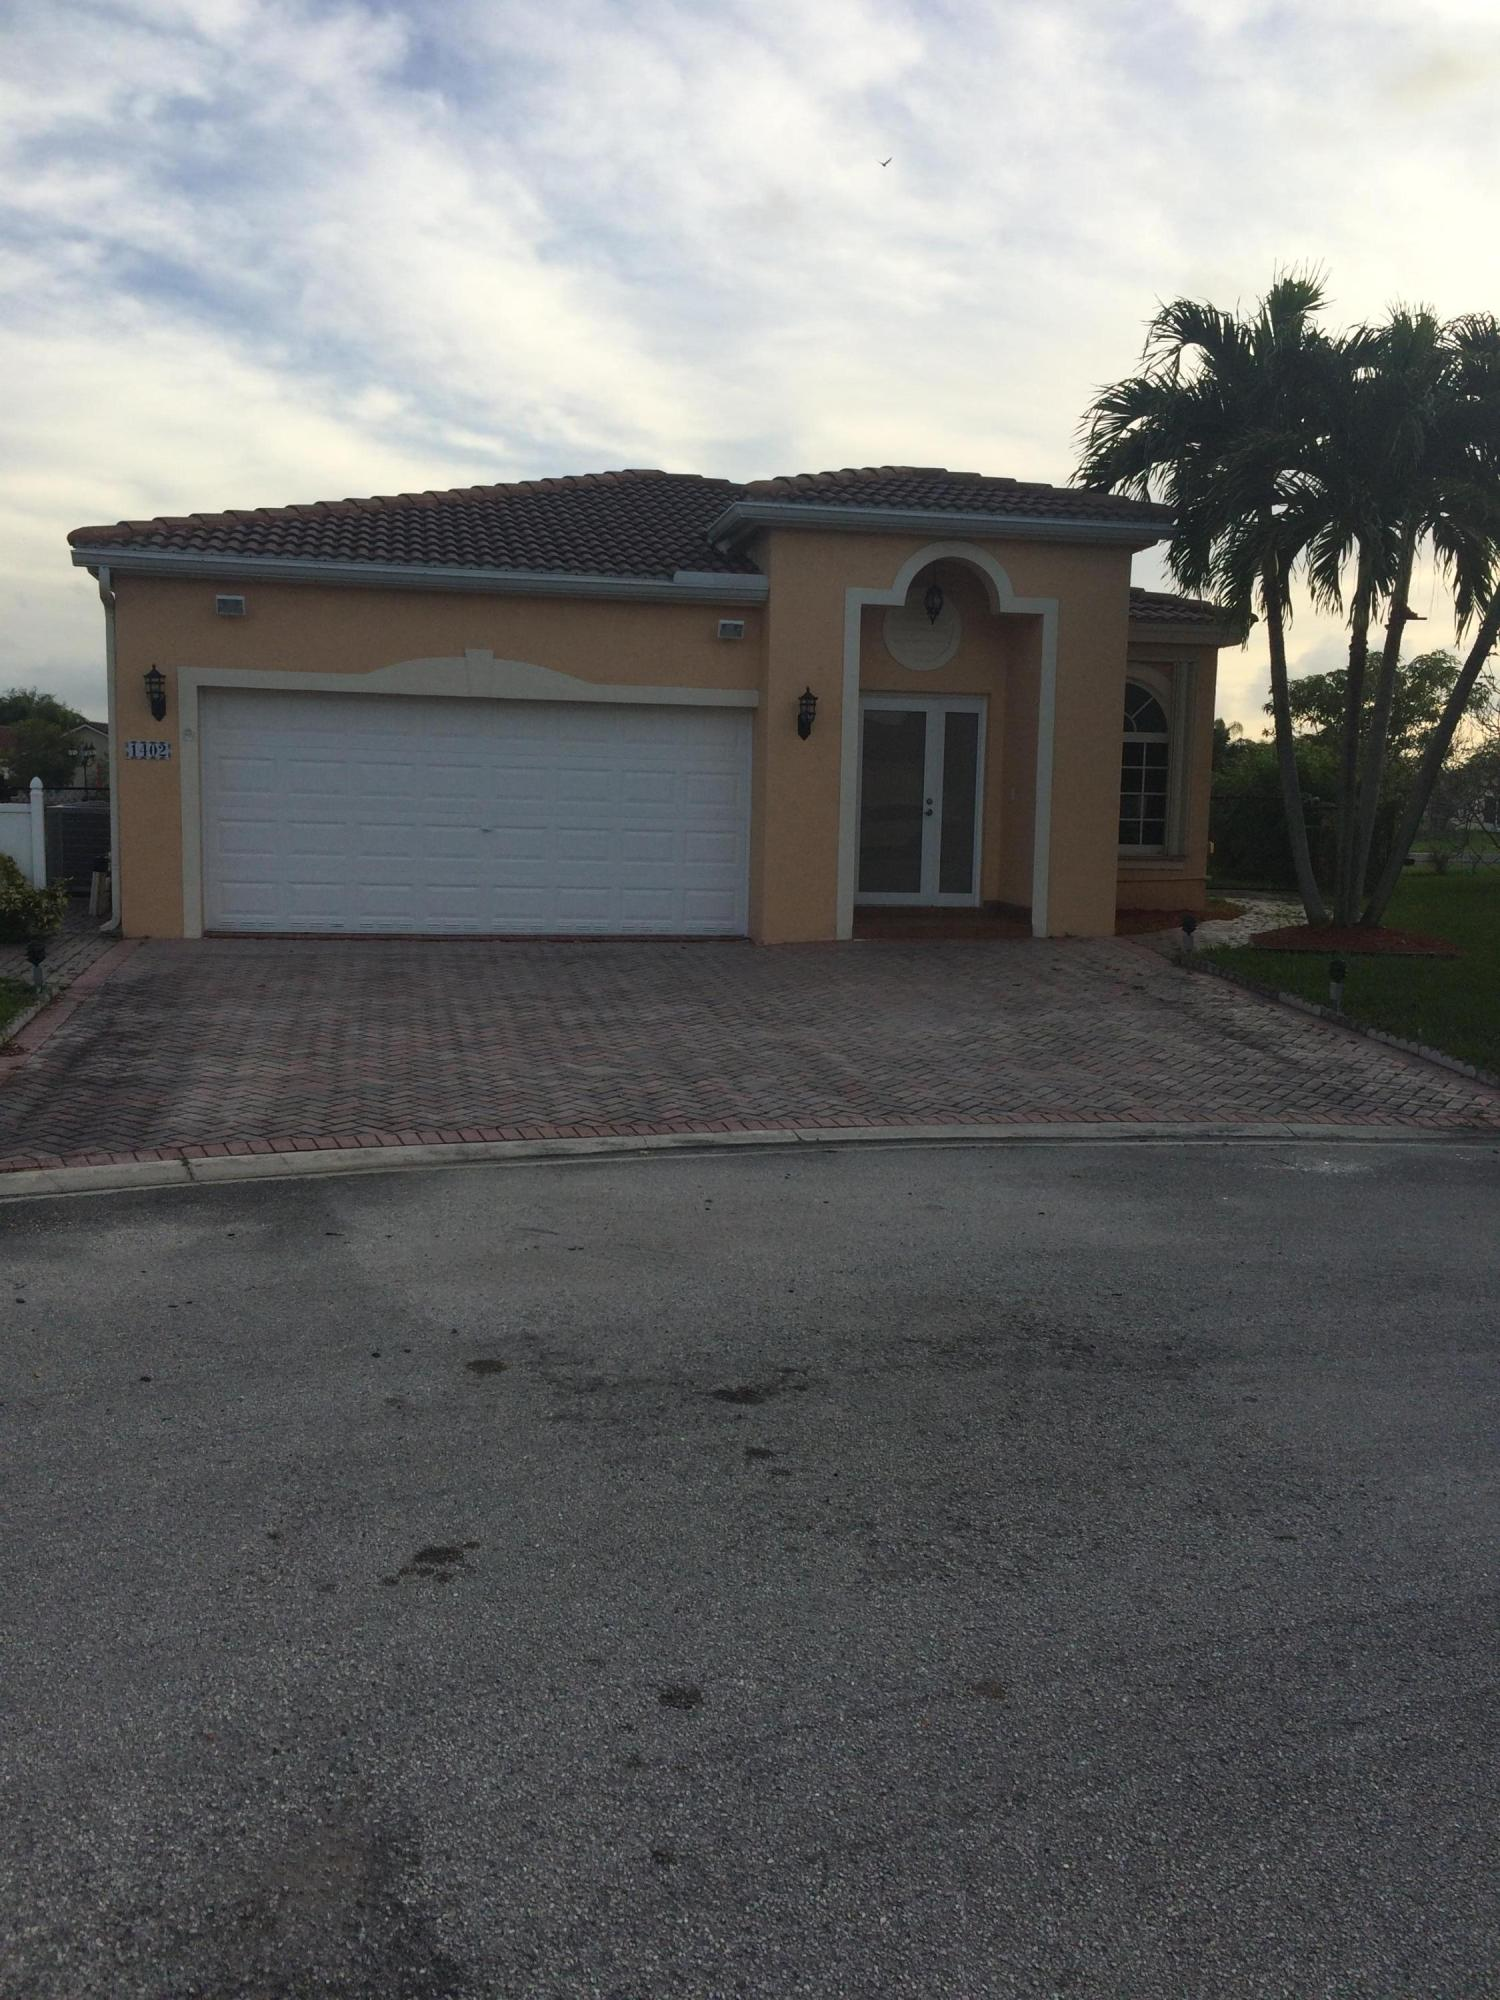 Home for sale in Waterways Deerfield Beach Florida